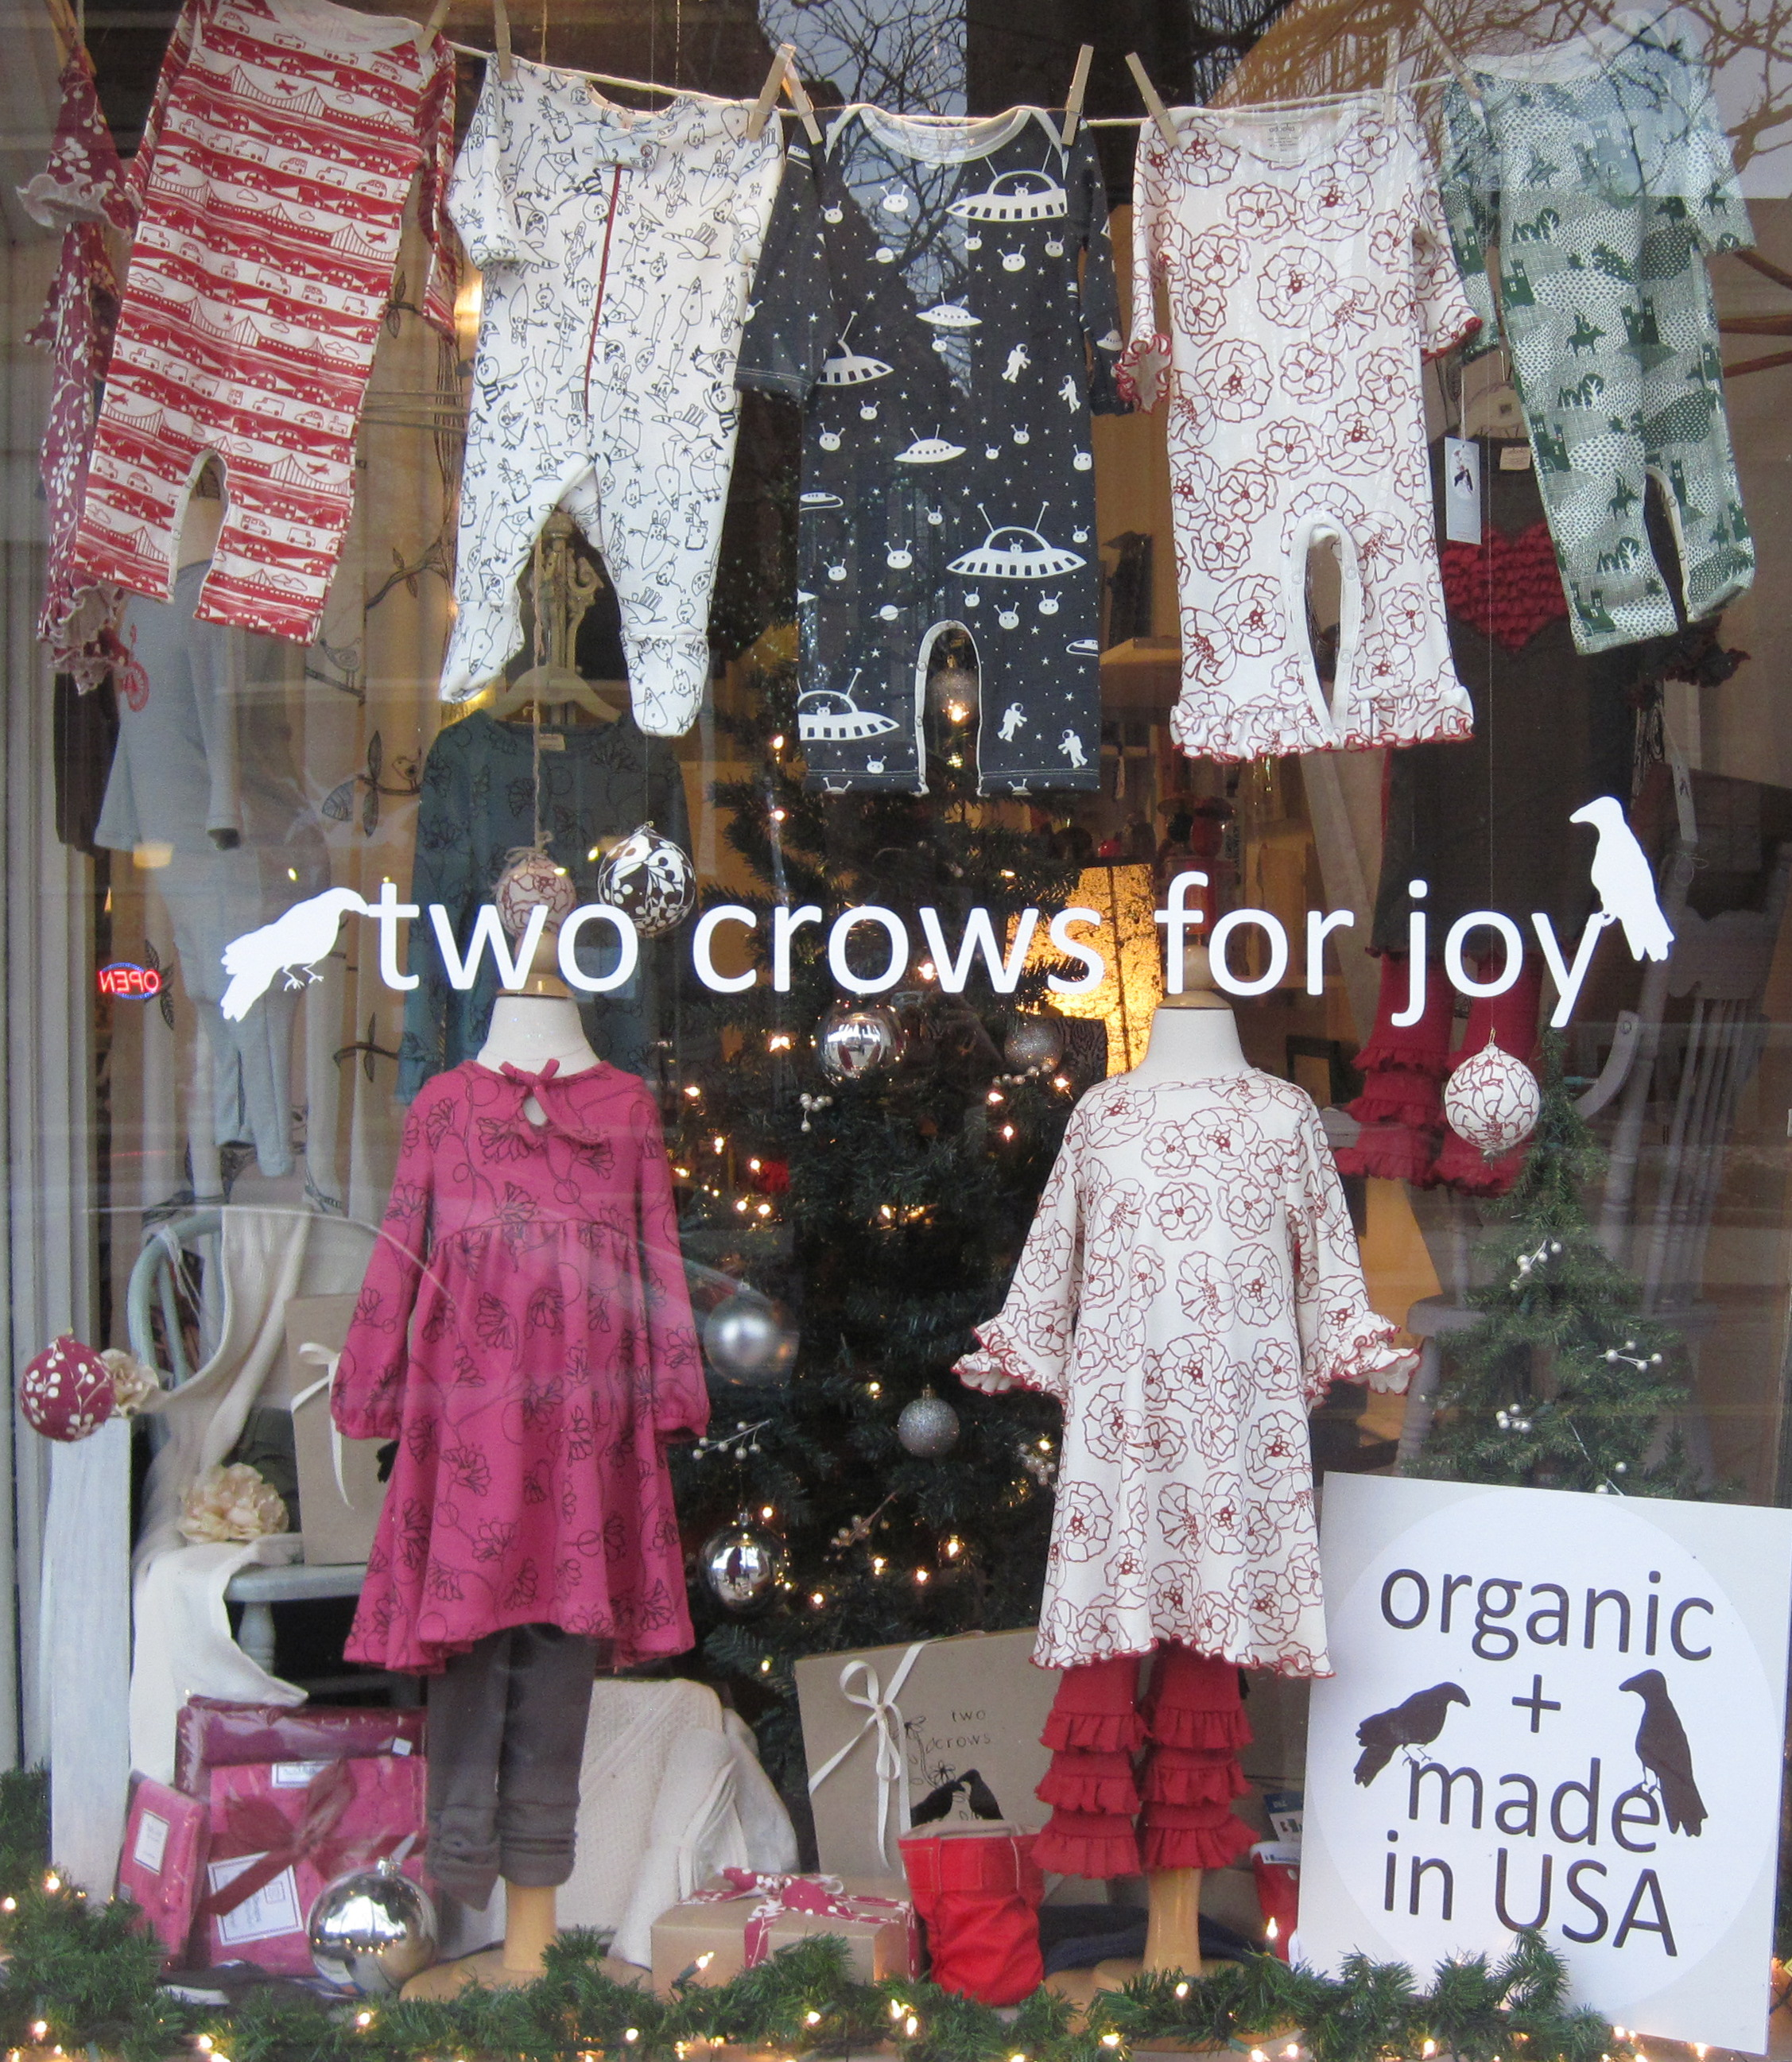 Two Crows for Joy boutique children's clothing store in Shaker Heights, Ohio OH